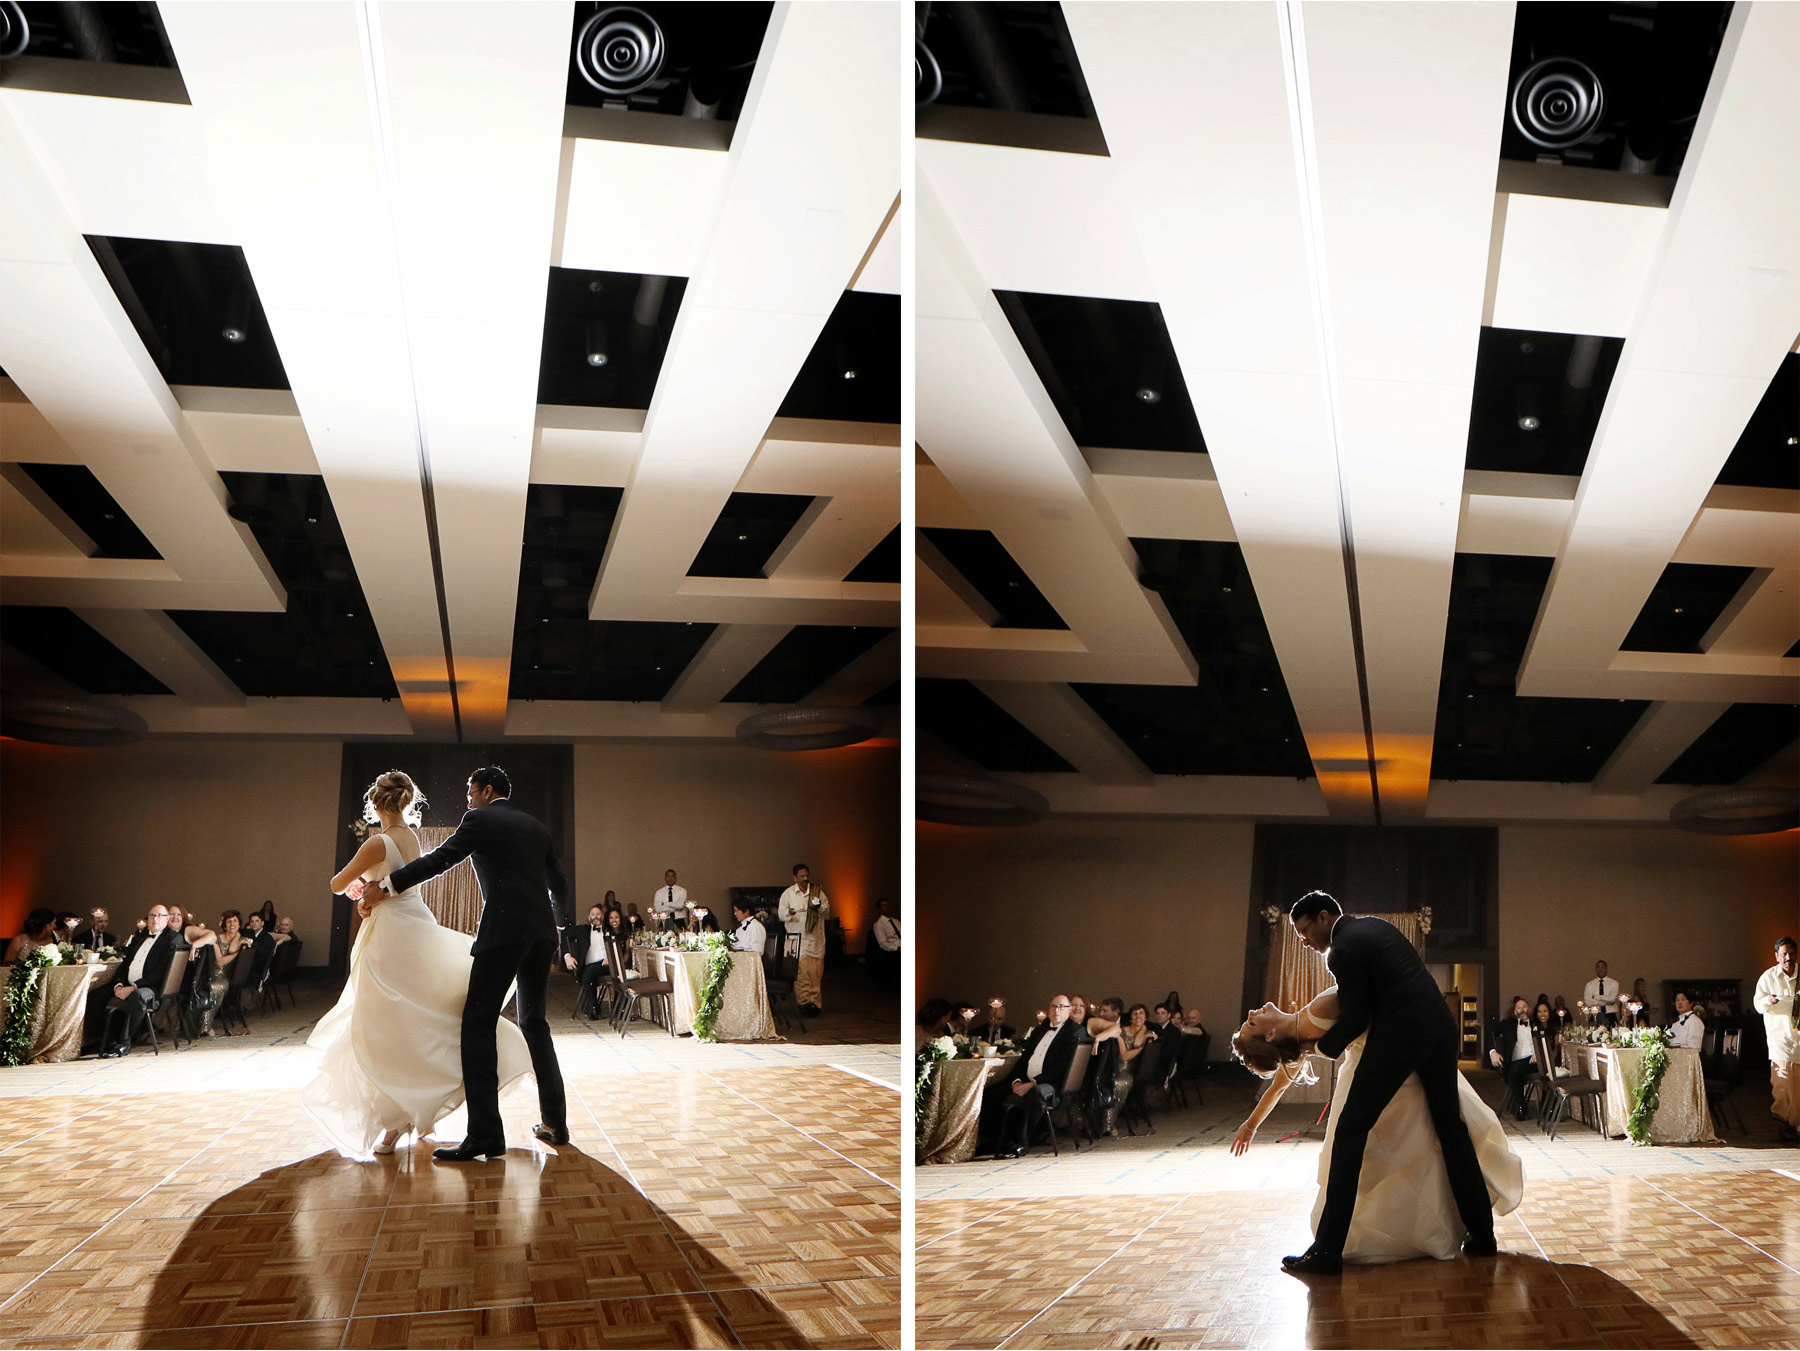 25-Minneapolis-Minnesota-Wedding-Photographer-by-Andrew-Vick-Photography-JW-Marriott-Mall-of-America-MOA-Spring-Bride-Groom-Dance-Twirl-Spin-Dip-Rachel-and-Venu.jpg